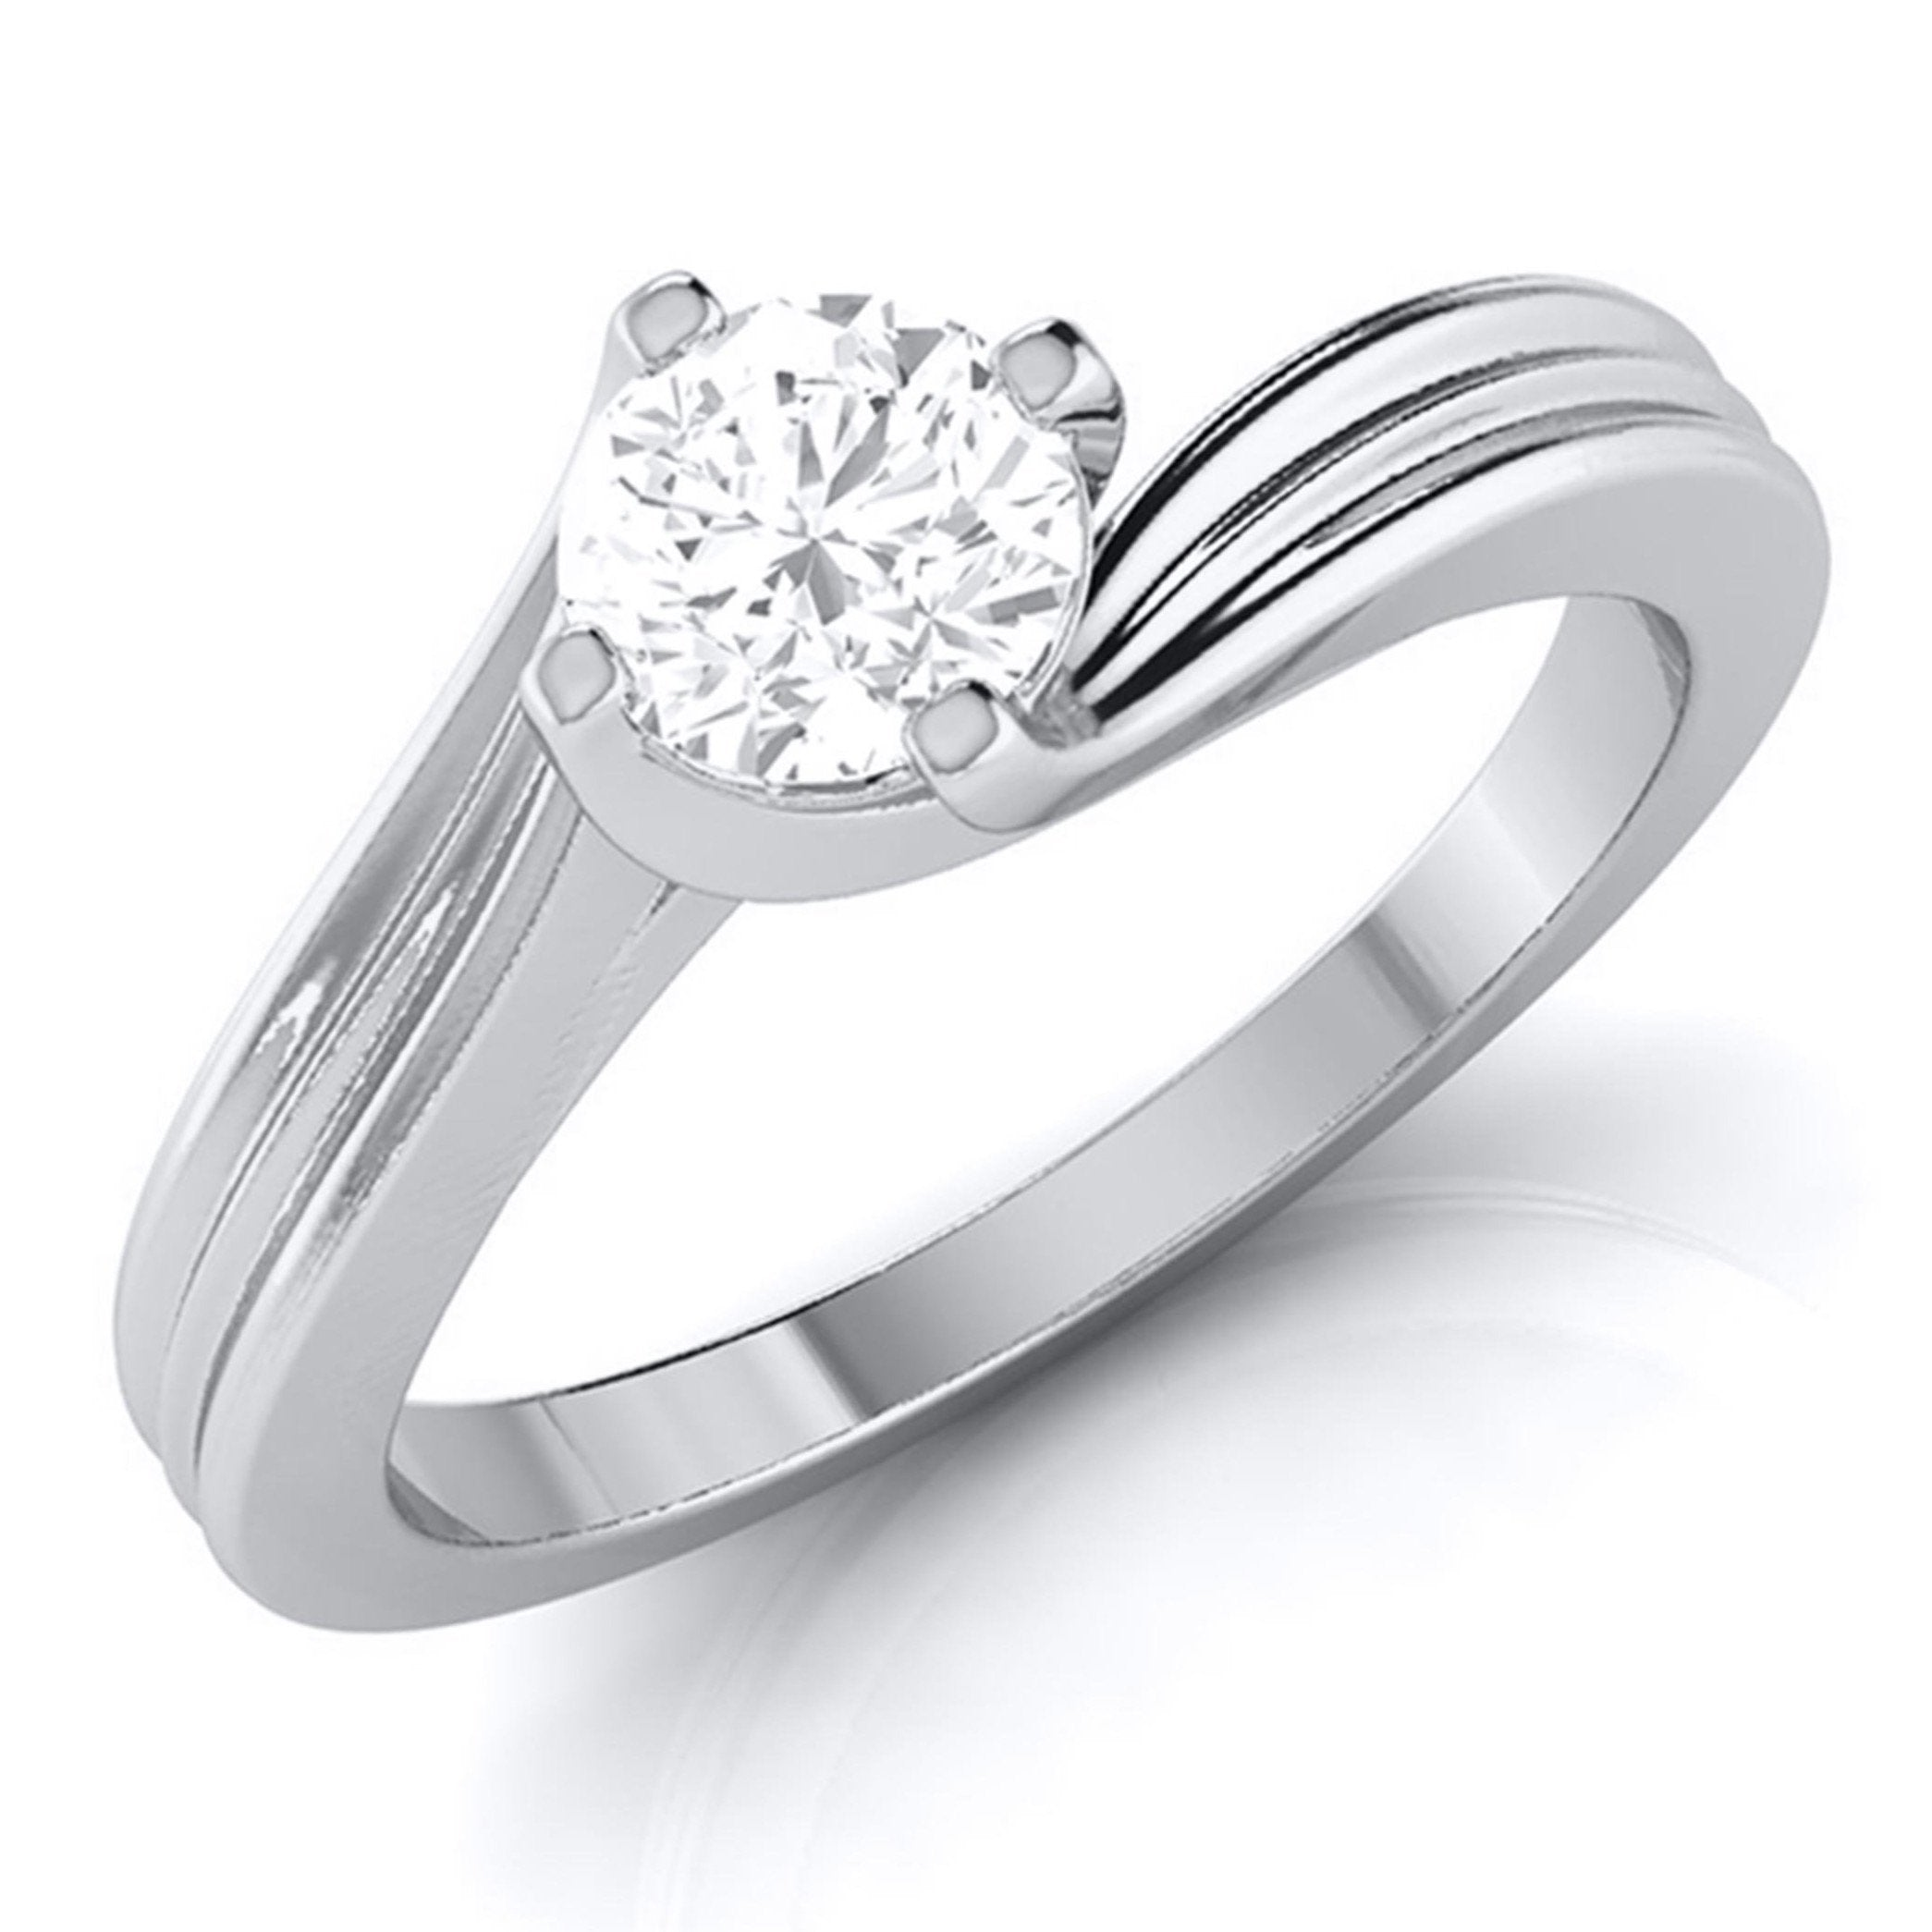 Curvy 0.40 cts. Platinum Solitaire Engagement Ring for Women JL PT G-124